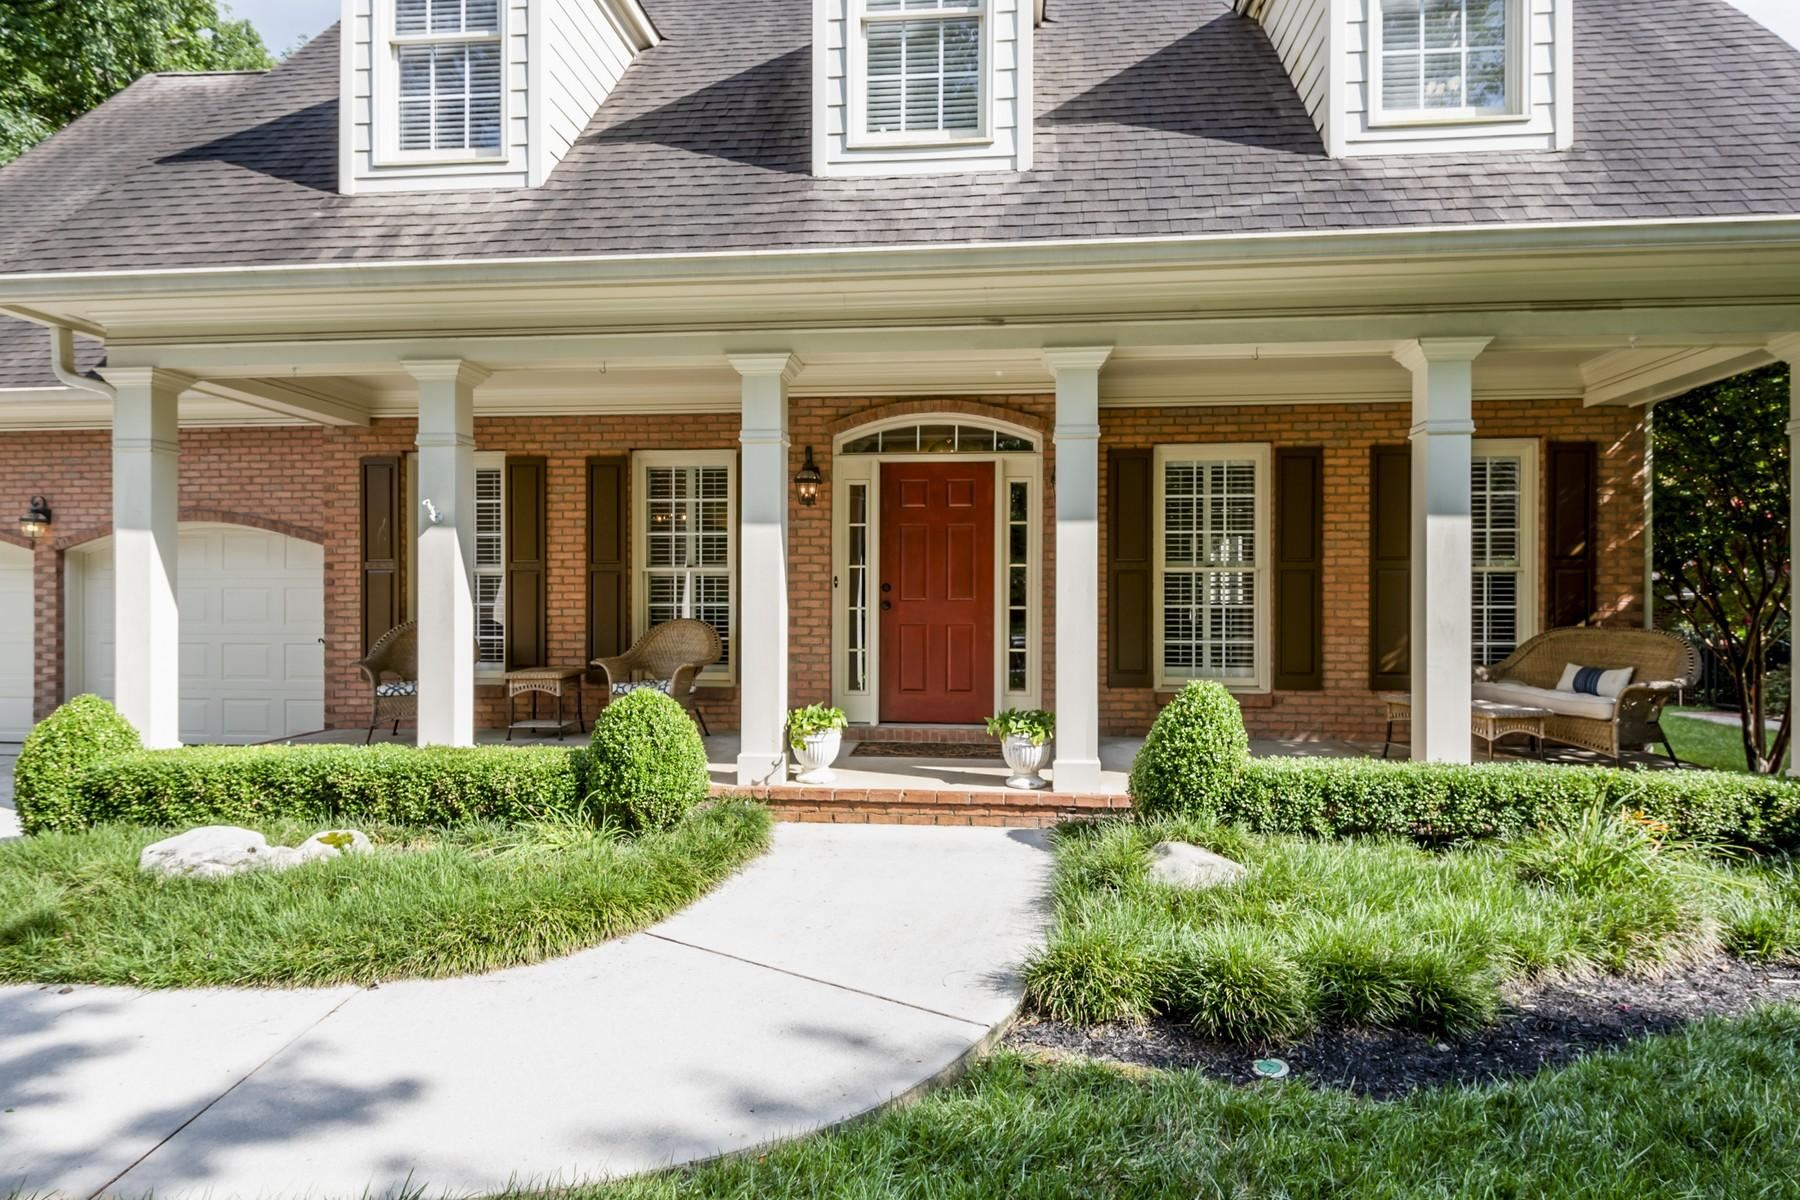 Photo of 7208 Lawford Rd, Knoxville, TN 37919 (MLS # 1122180)